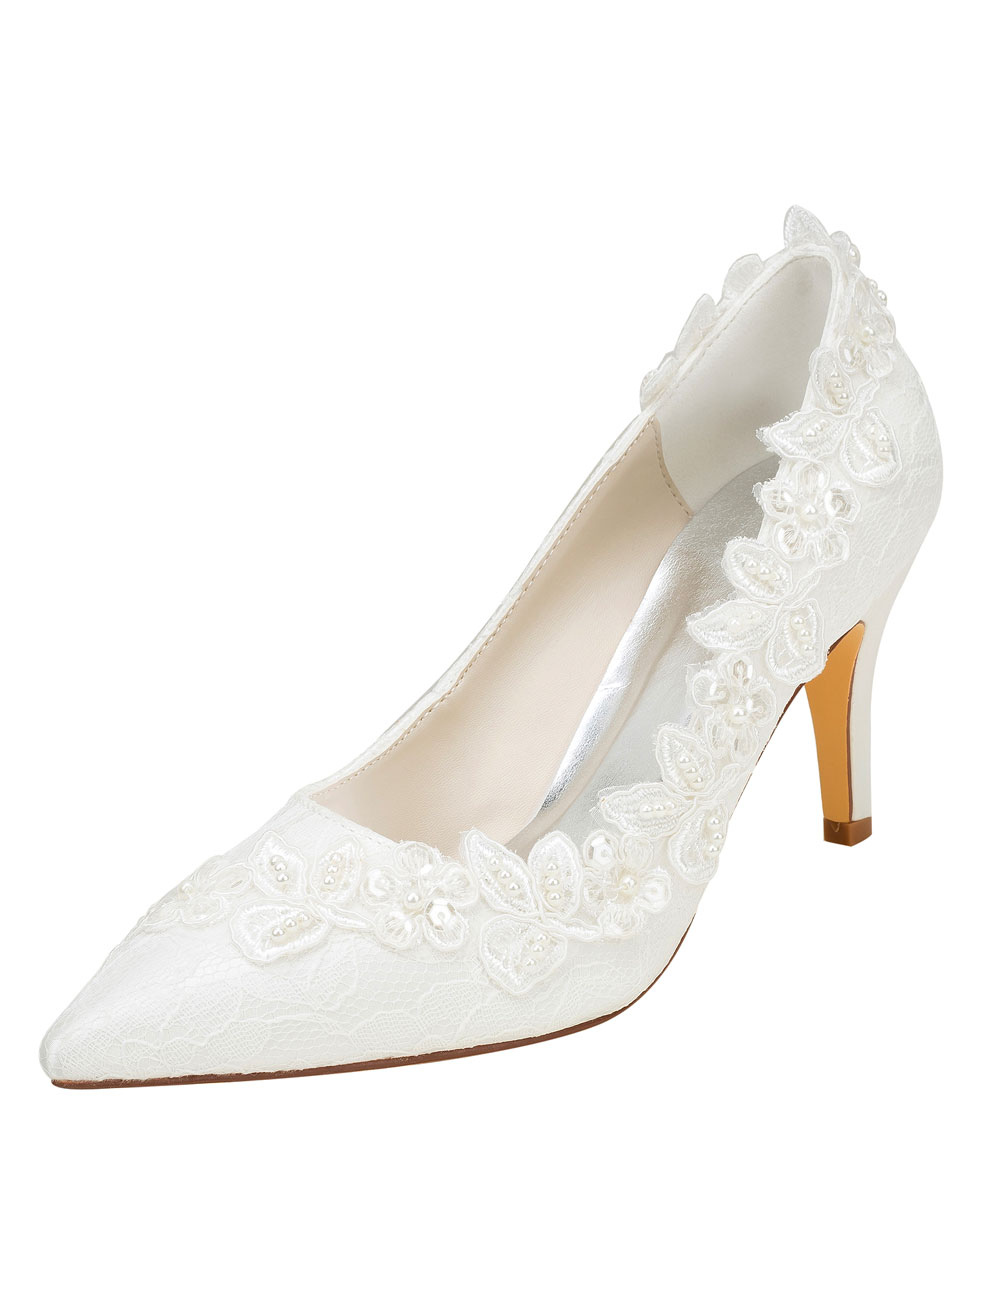 Buy Ivory Wedding Shoes High Heel Lace Pointed Toe Flowers Slip On Pumps for $54.99 in Milanoo store